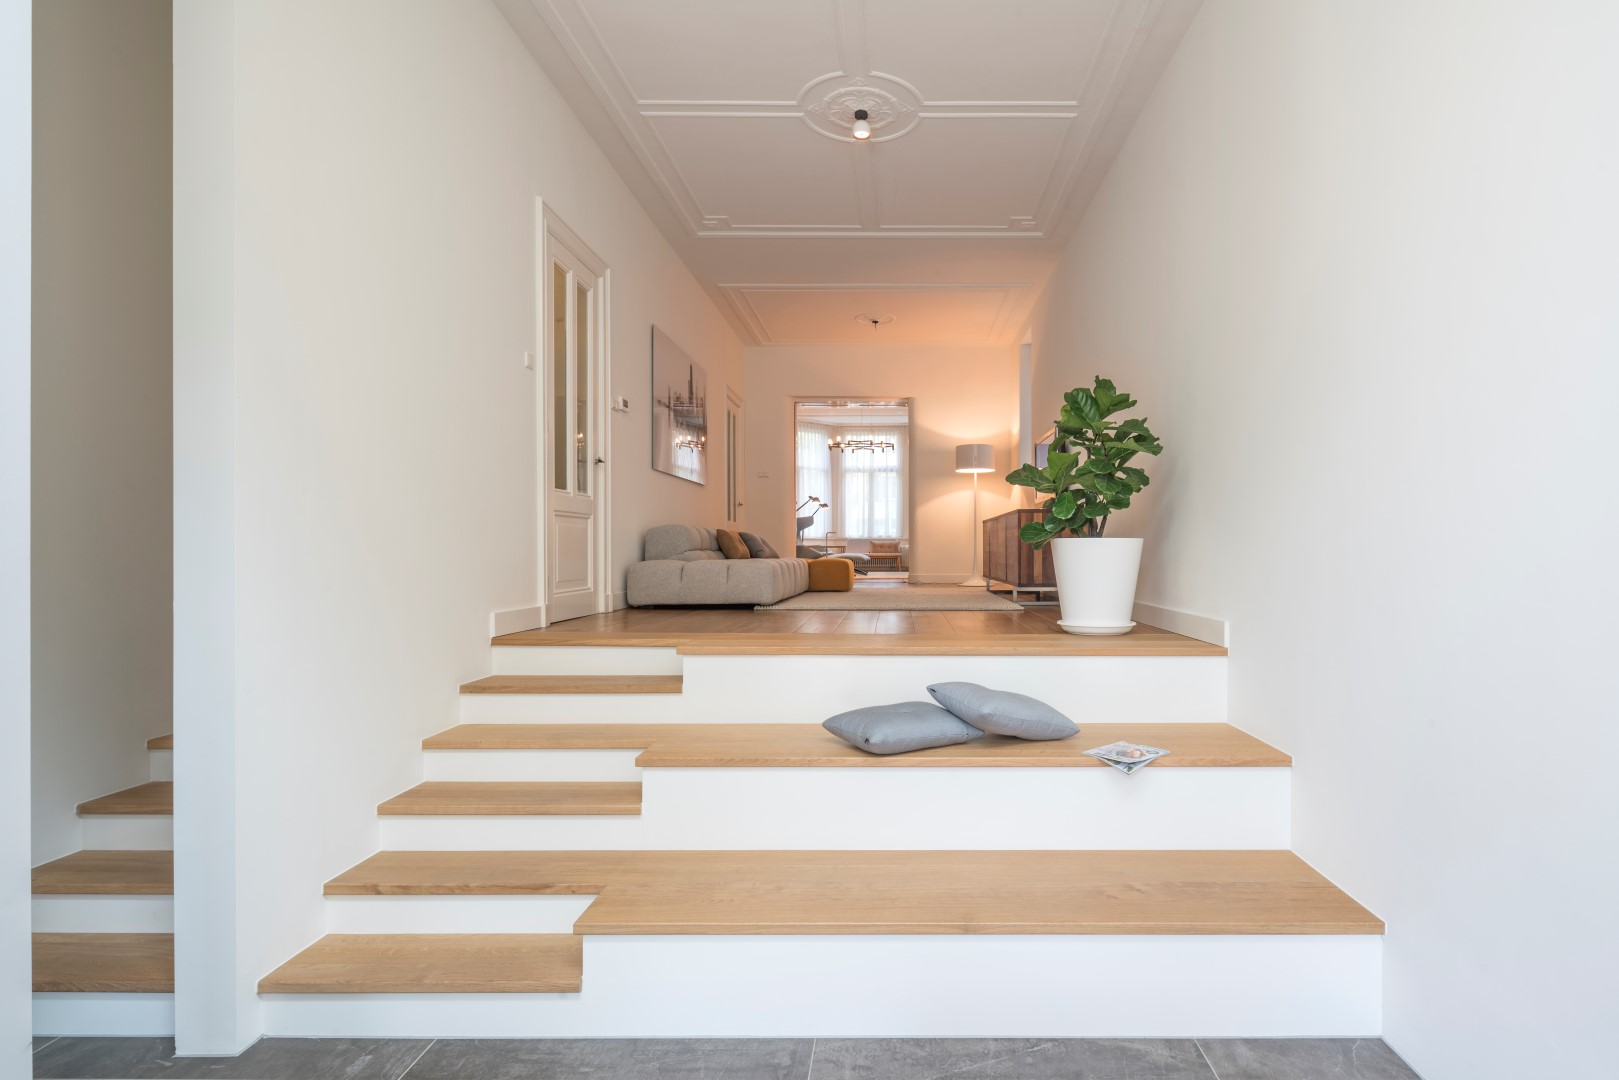 the stairs do not only connect the levels but also provide space to sit down and relax